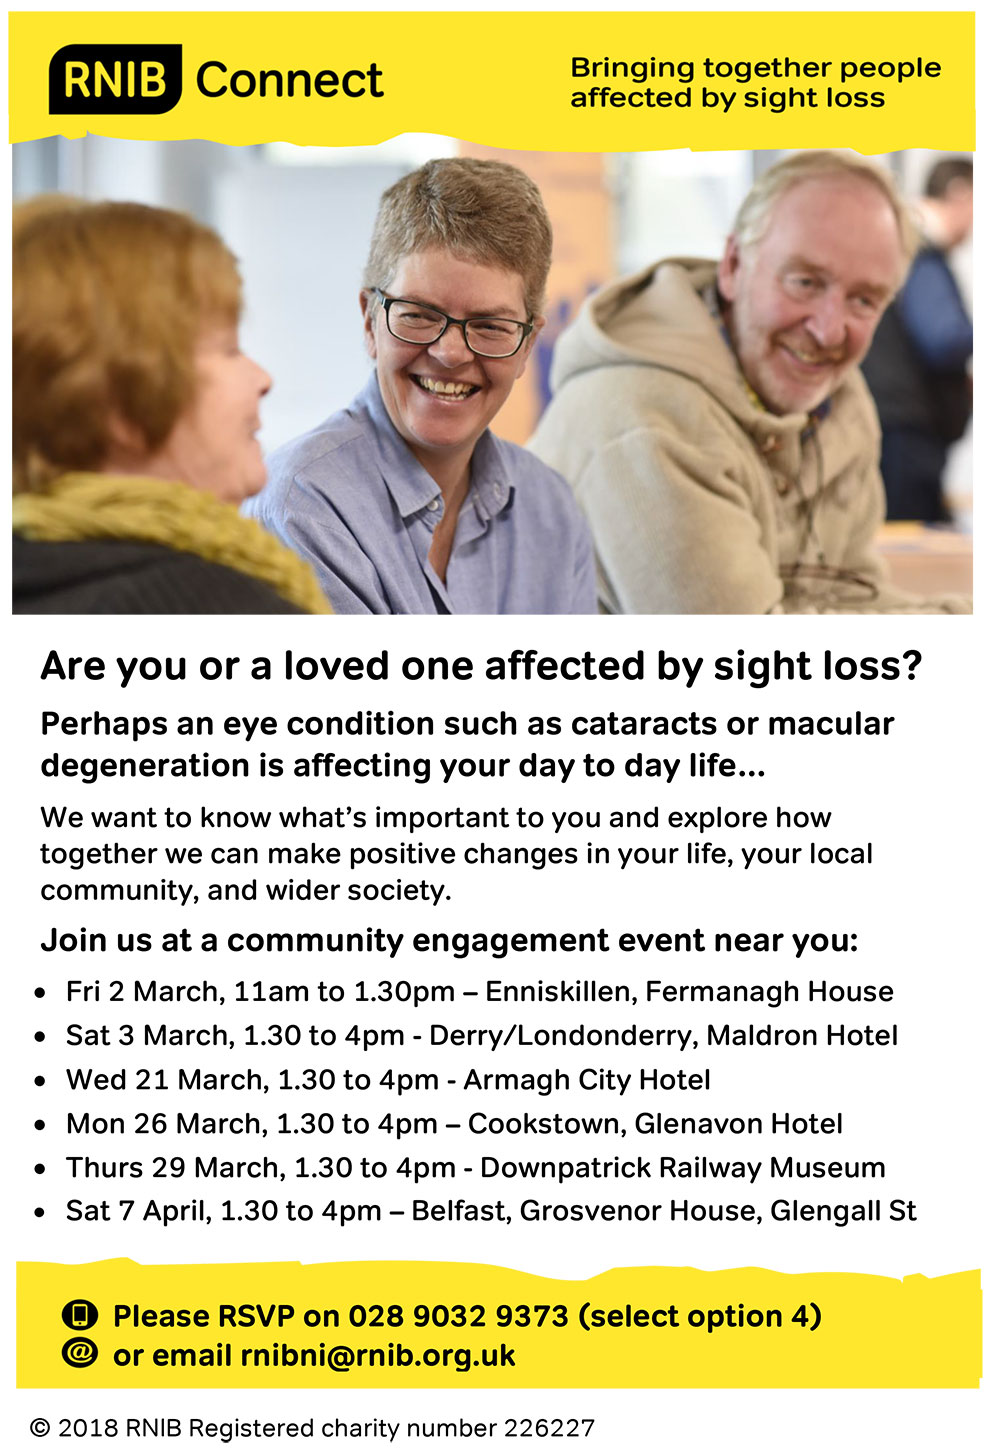 RNIB Community Engagement Events